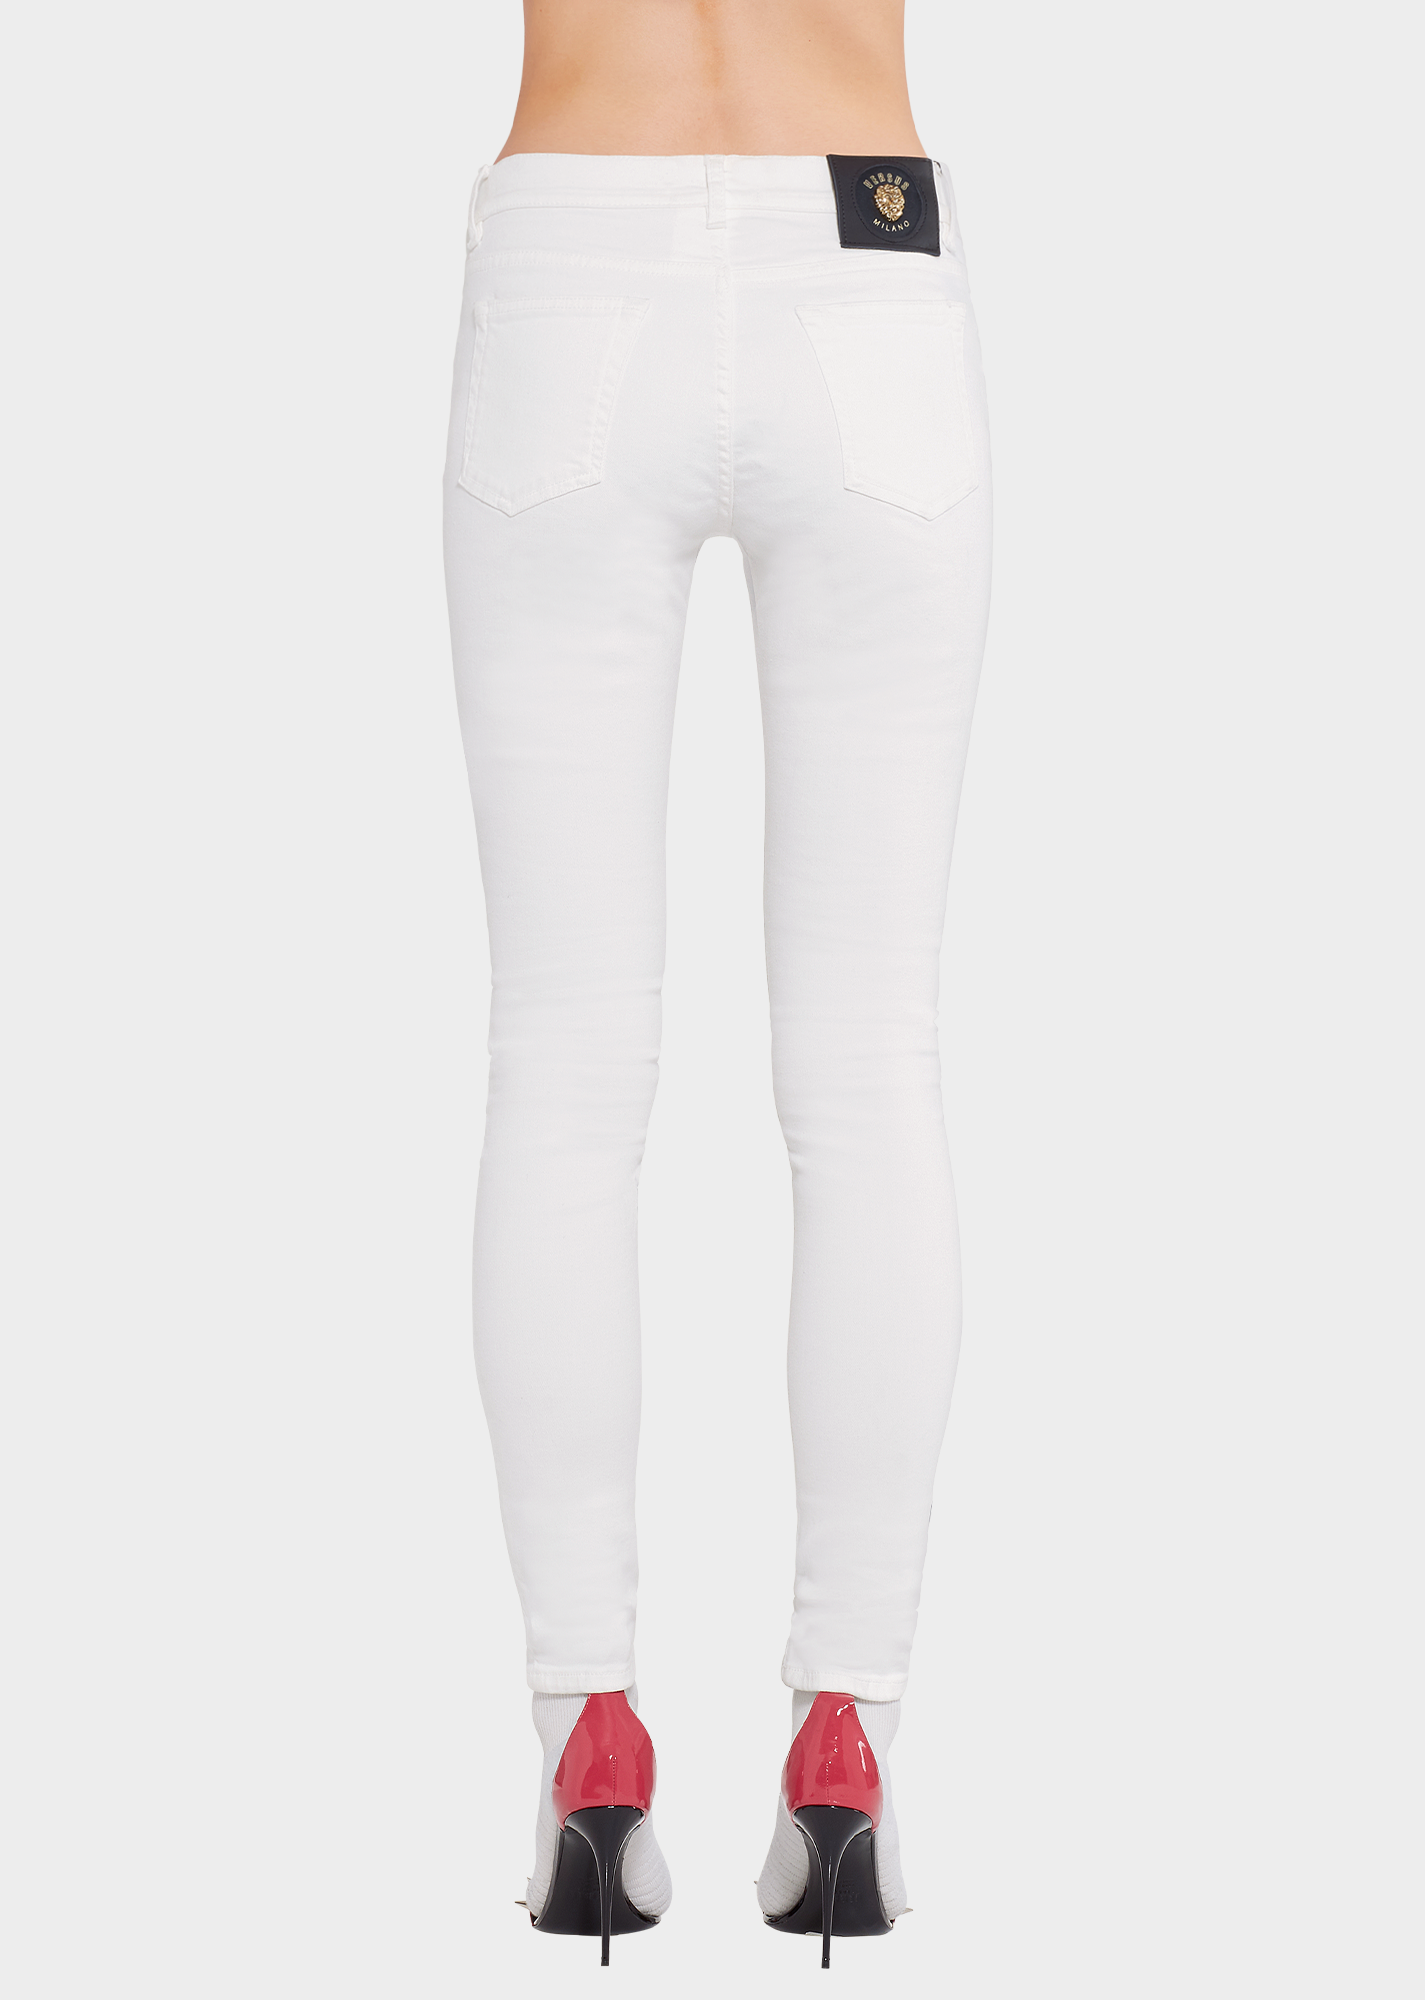 White skinny jeans versus versace pants  also for women us online store rh